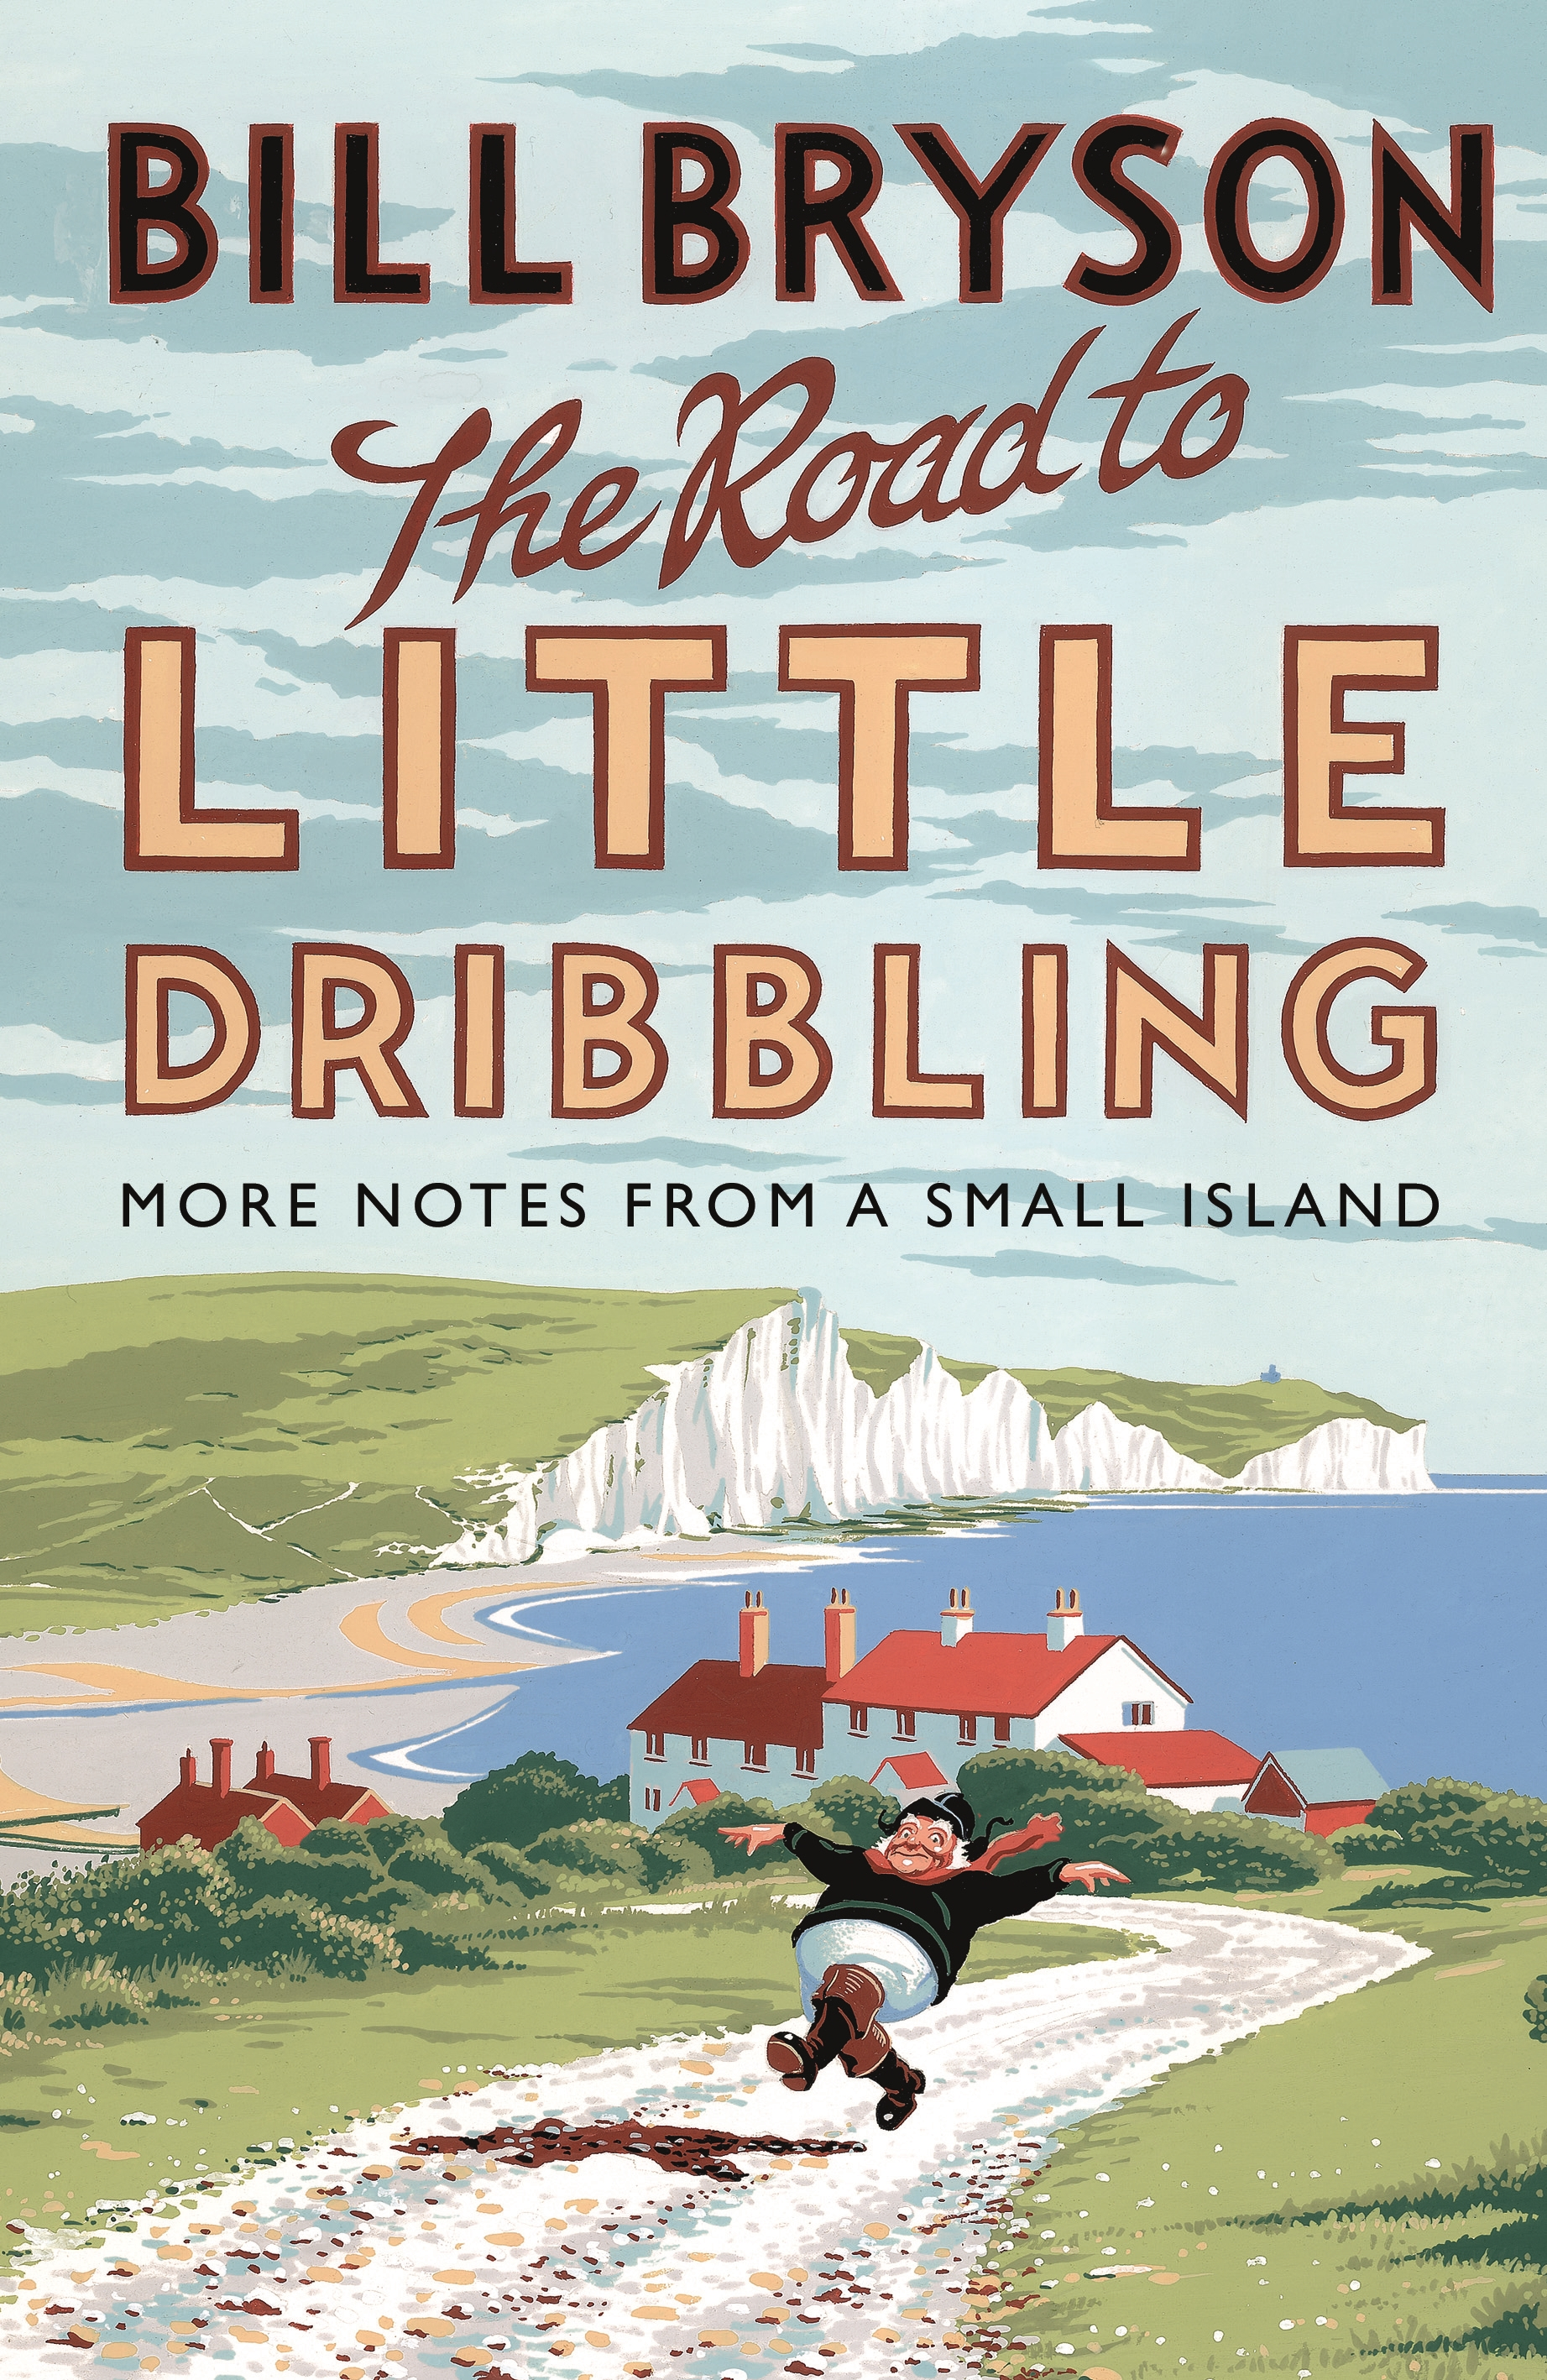 Cover Art for The Road to Little Dribbling: More Notes From a Small Island, ISBN: 9780857522344